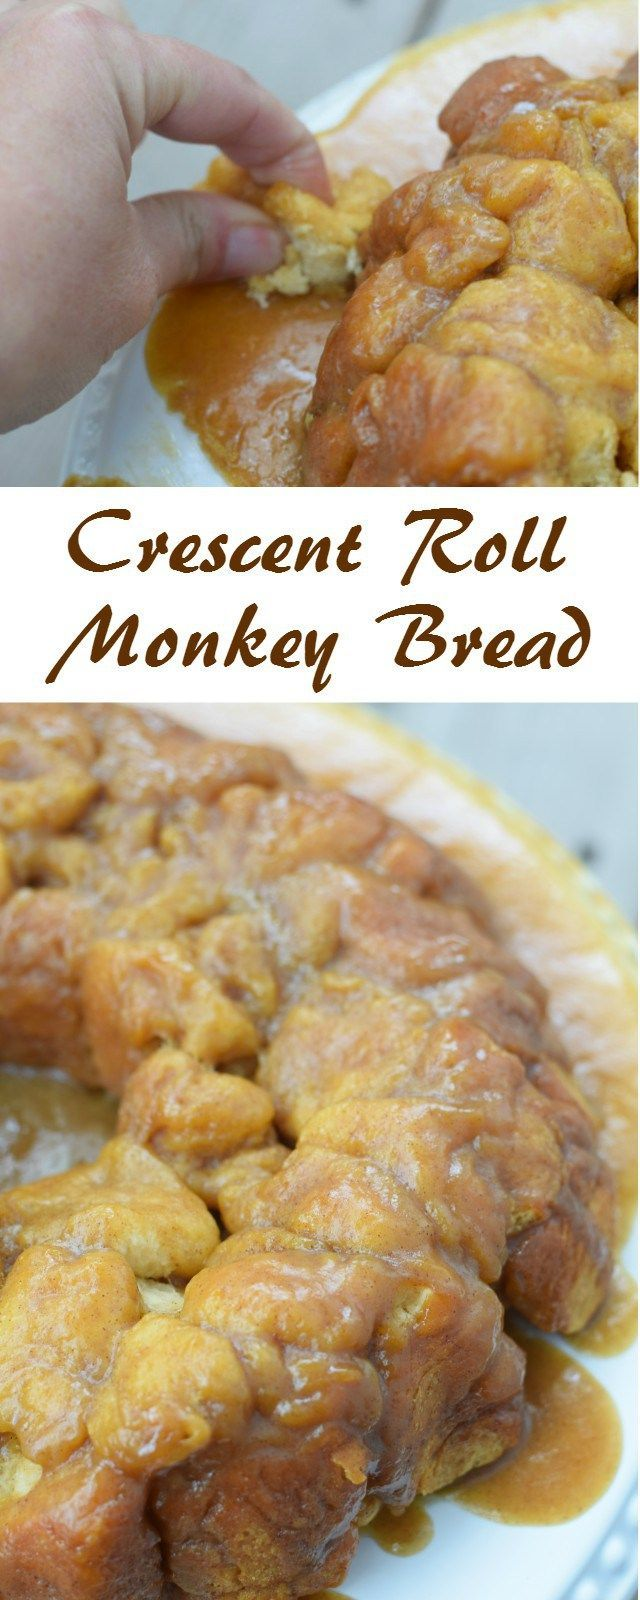 Delicious and easy crescent roll monkey bread recipe. This comes together quickly for a special occasion breakfast for company or a fun weekend treat for your family brunch. @Pillsbury #ItsBakingSeason AD